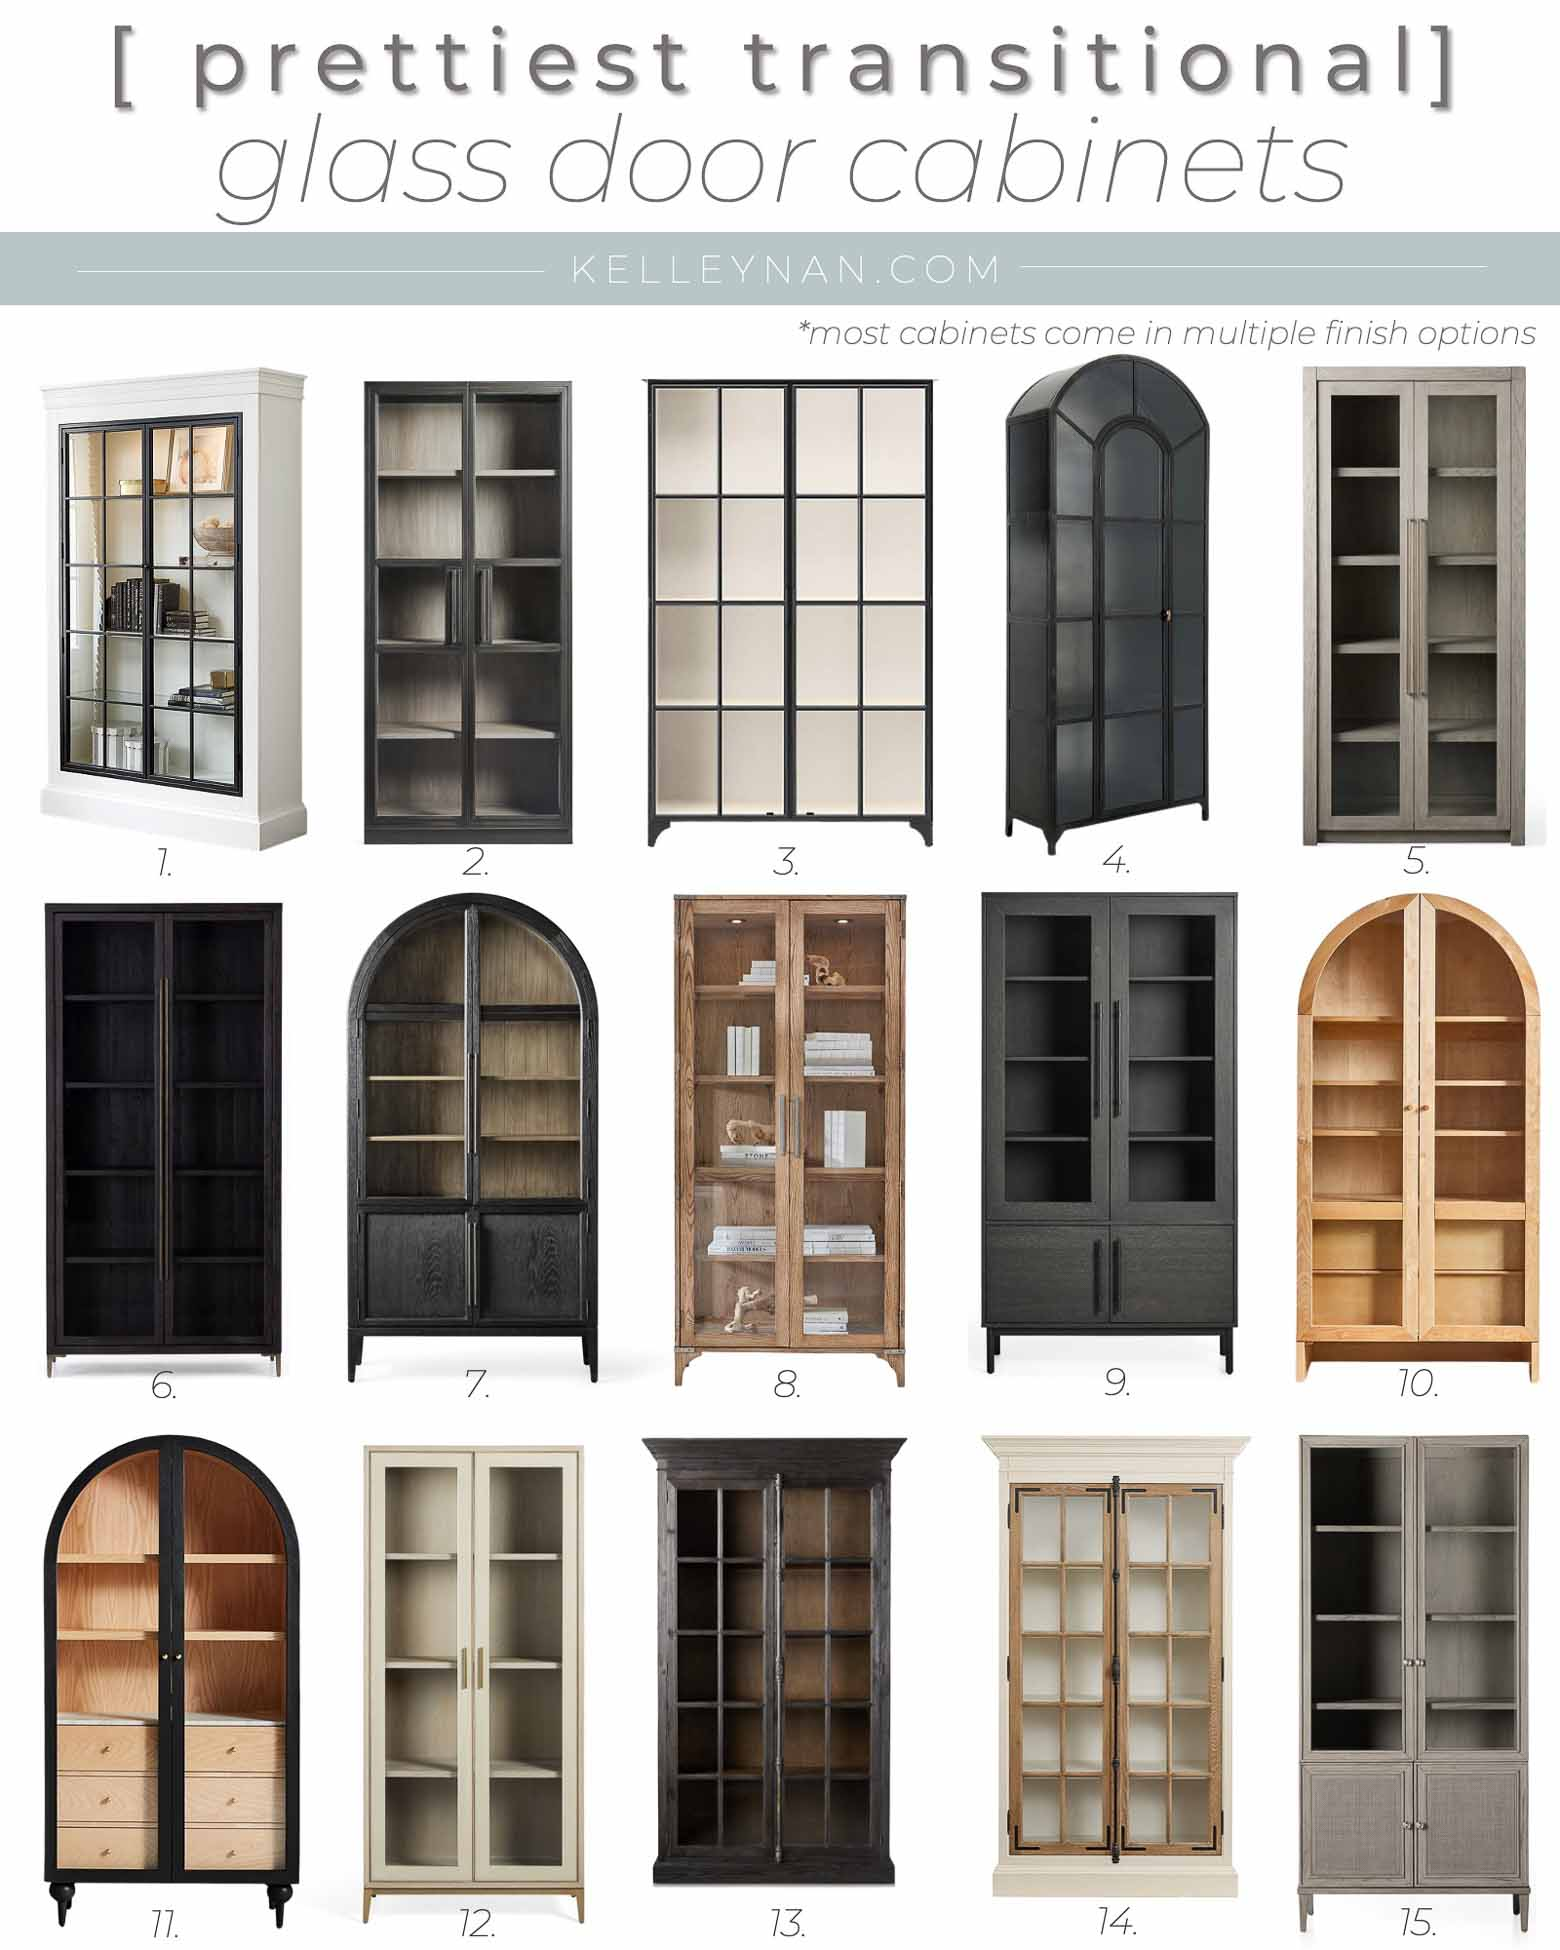 15 Prettiest Glass Door Cabinets -- All Transitional Styles that will Work With Everything from Traditional Classic Design to Modern Home Design